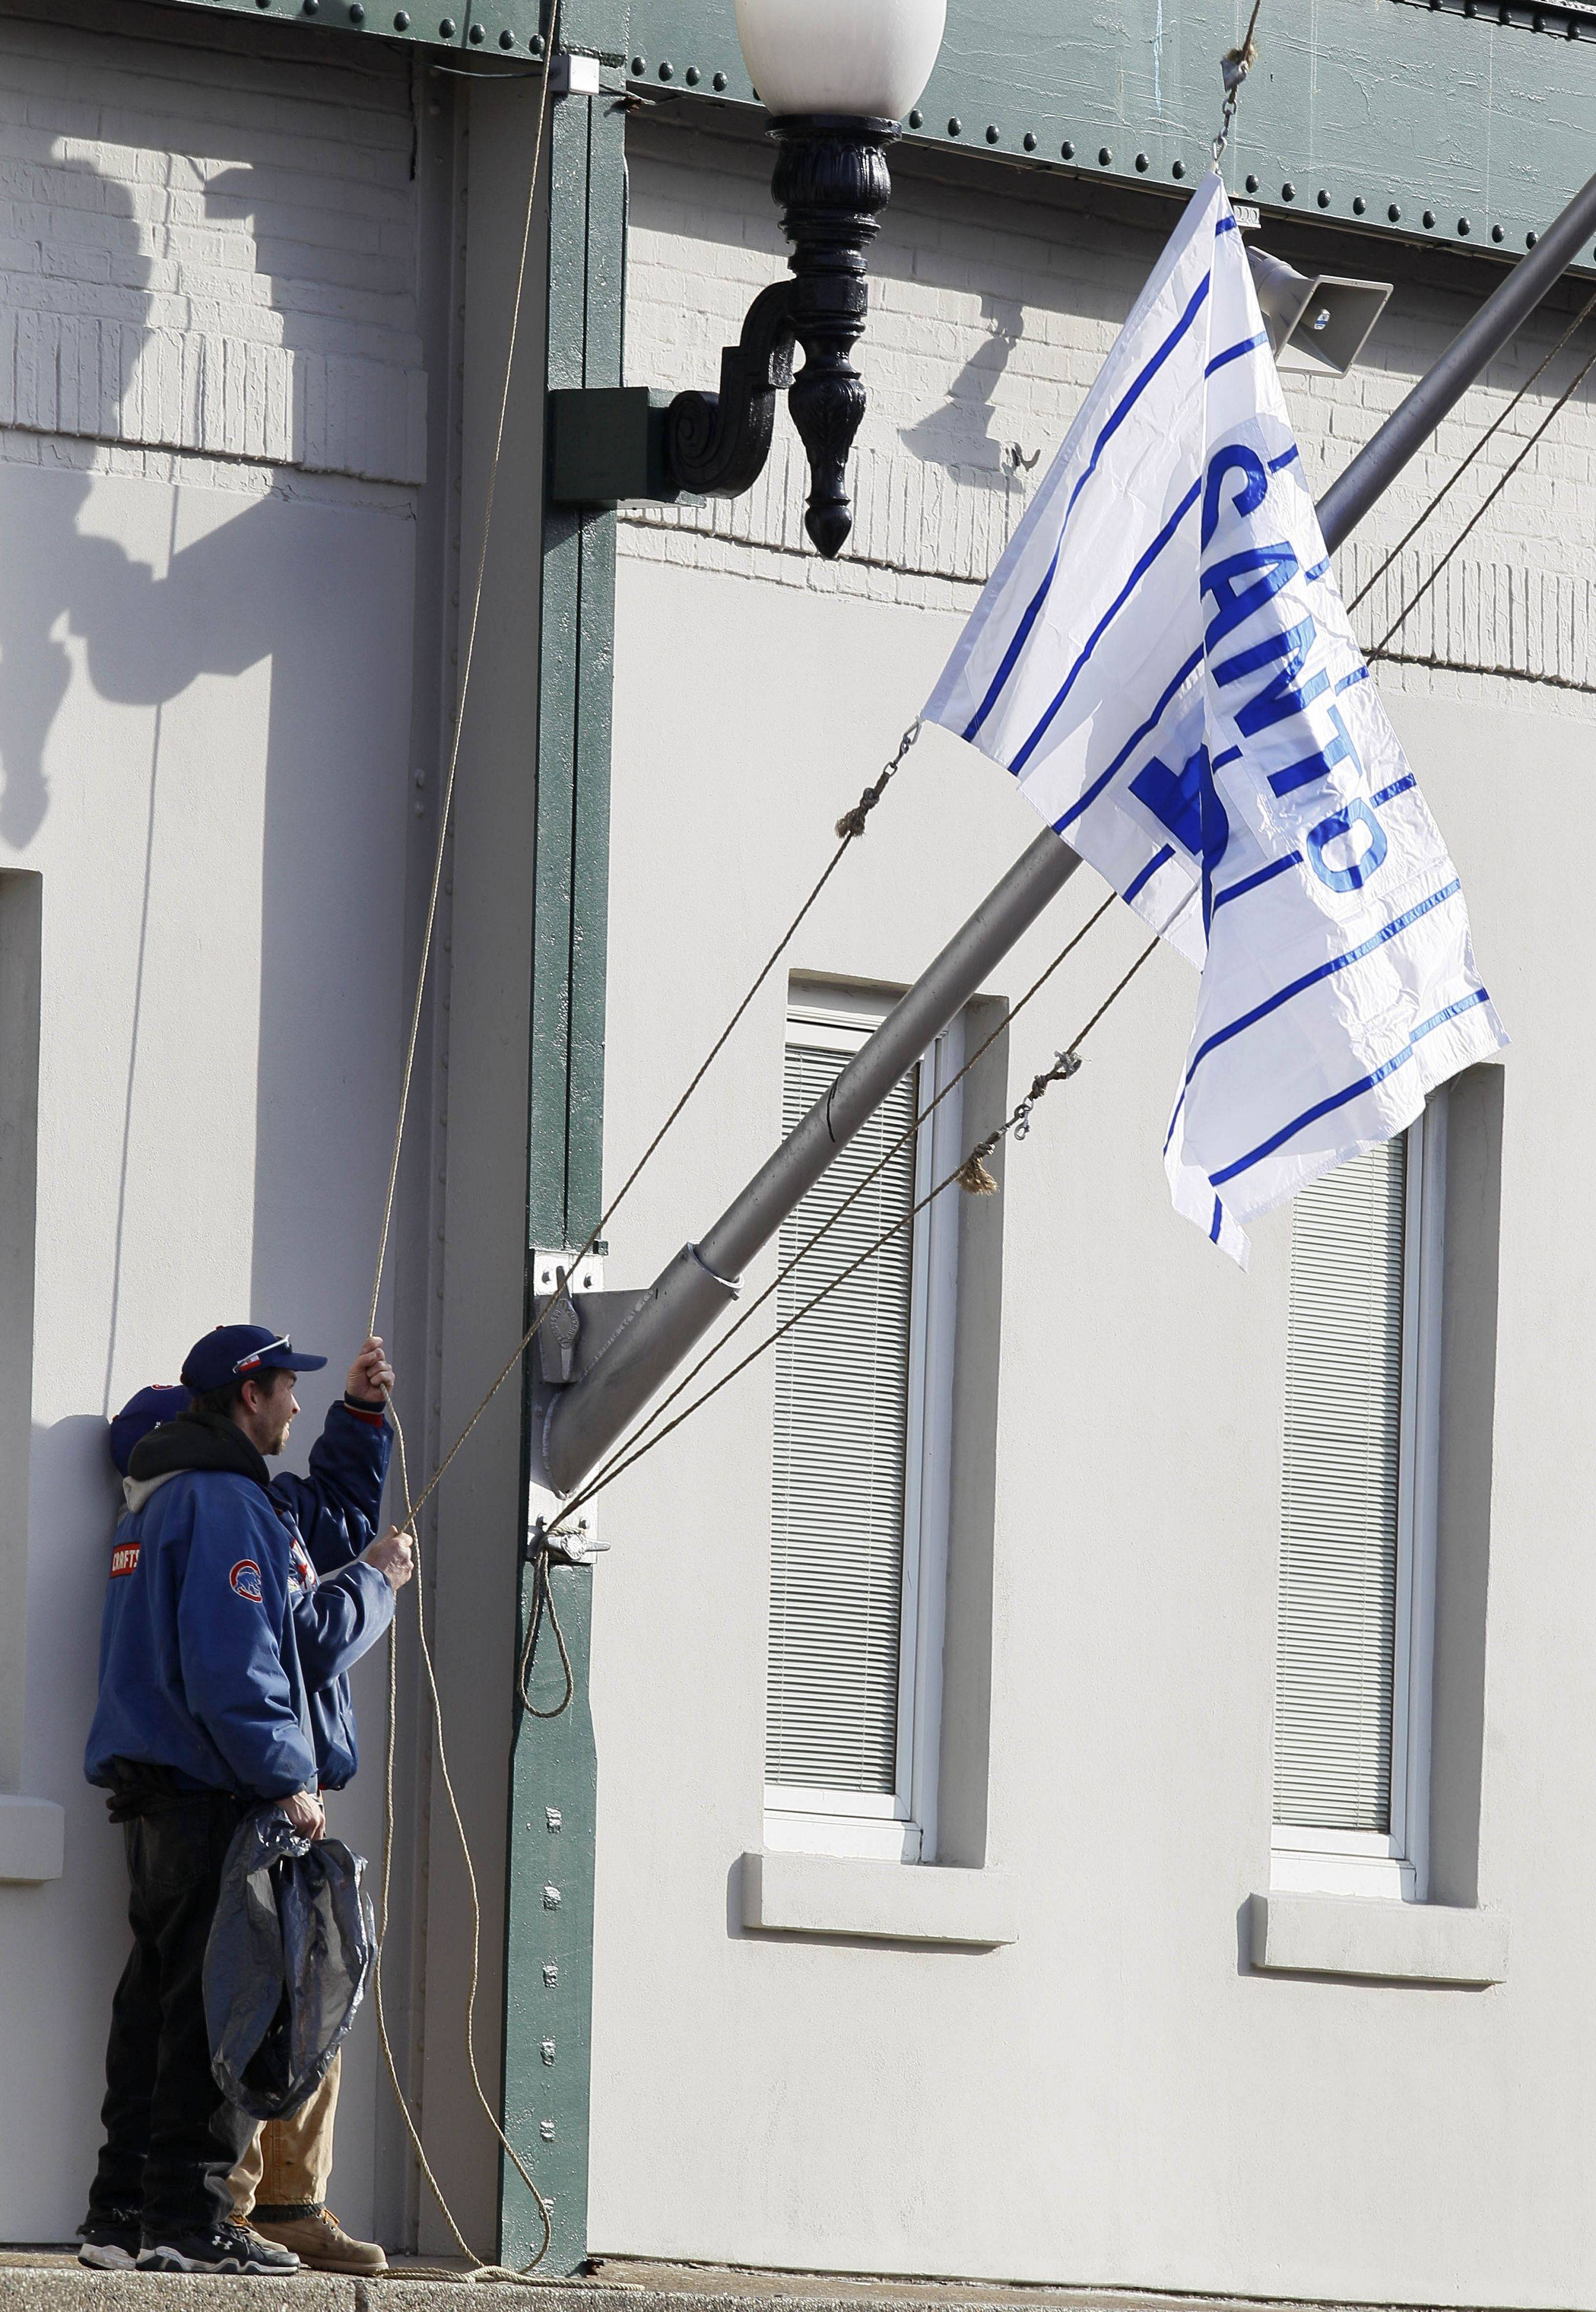 Wrigley Field employees raise one of two Ron Santo flags to half mast in front of the stadium after news of the death of one of the Cubs greatest players was announced.